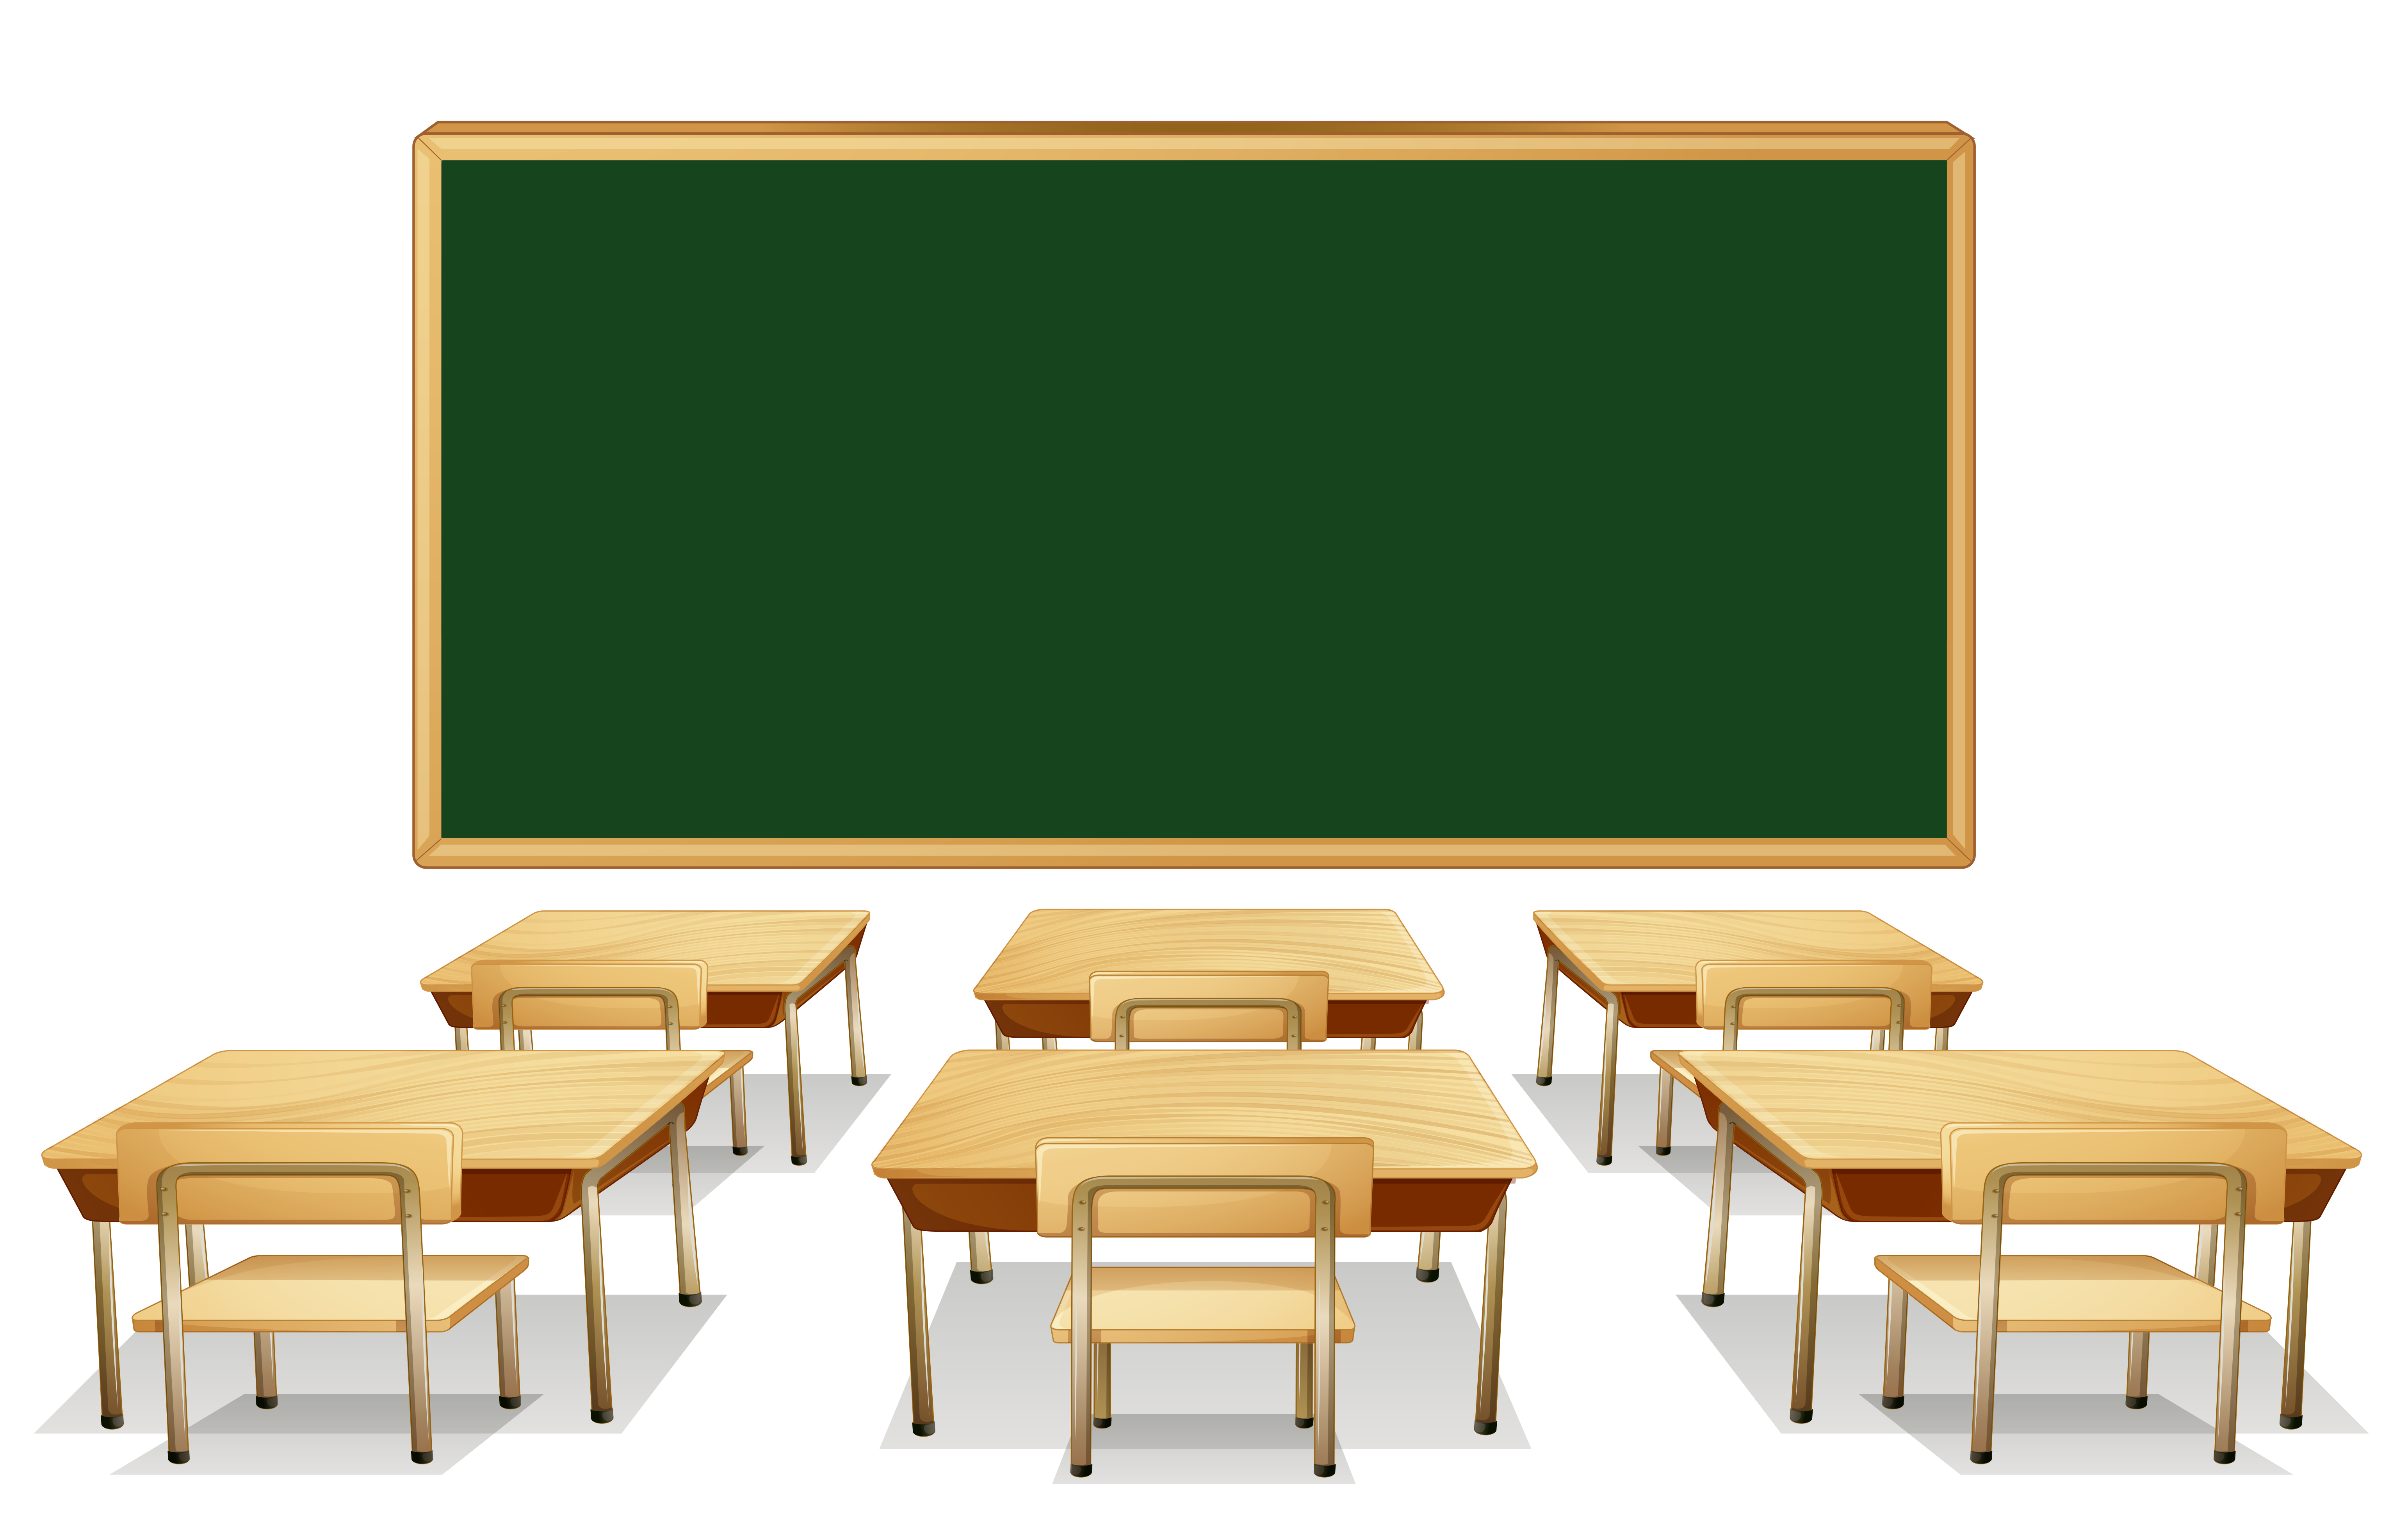 With green board and. Classroom clipart thing